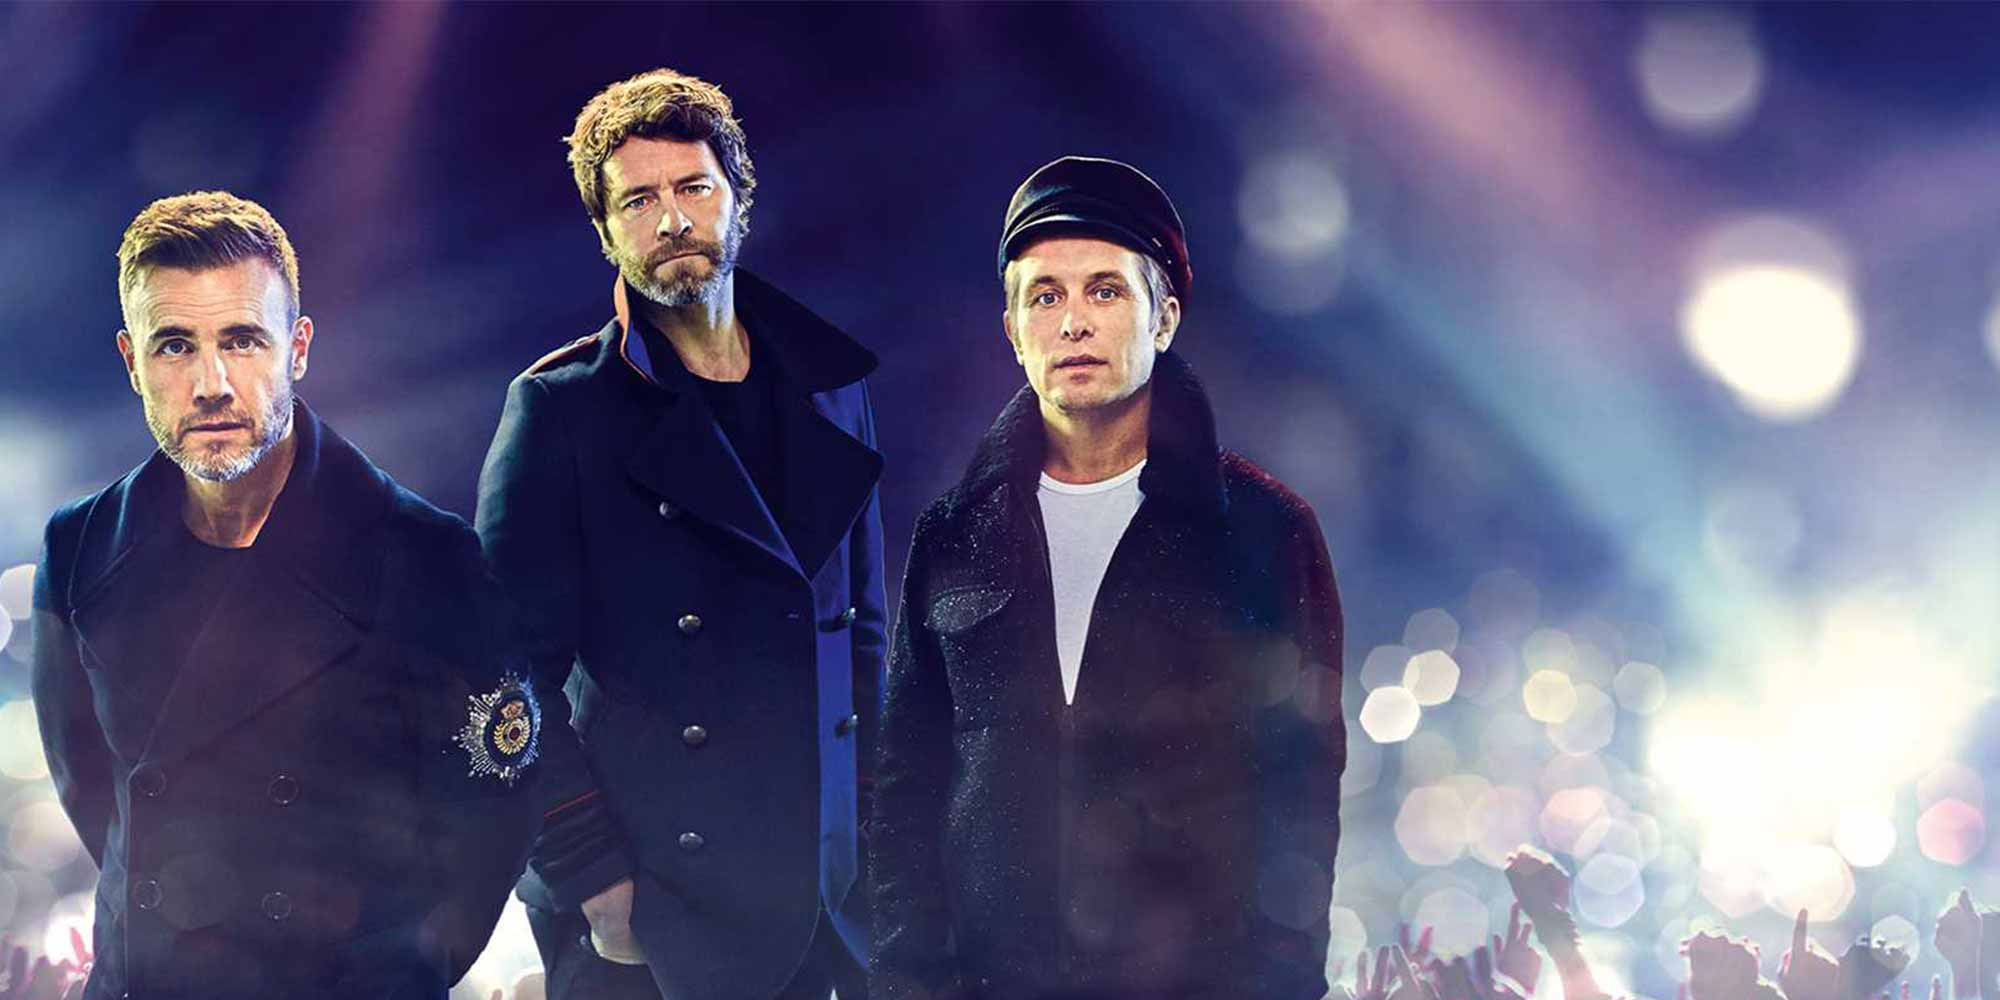 Take That - Wonderland live from the 02